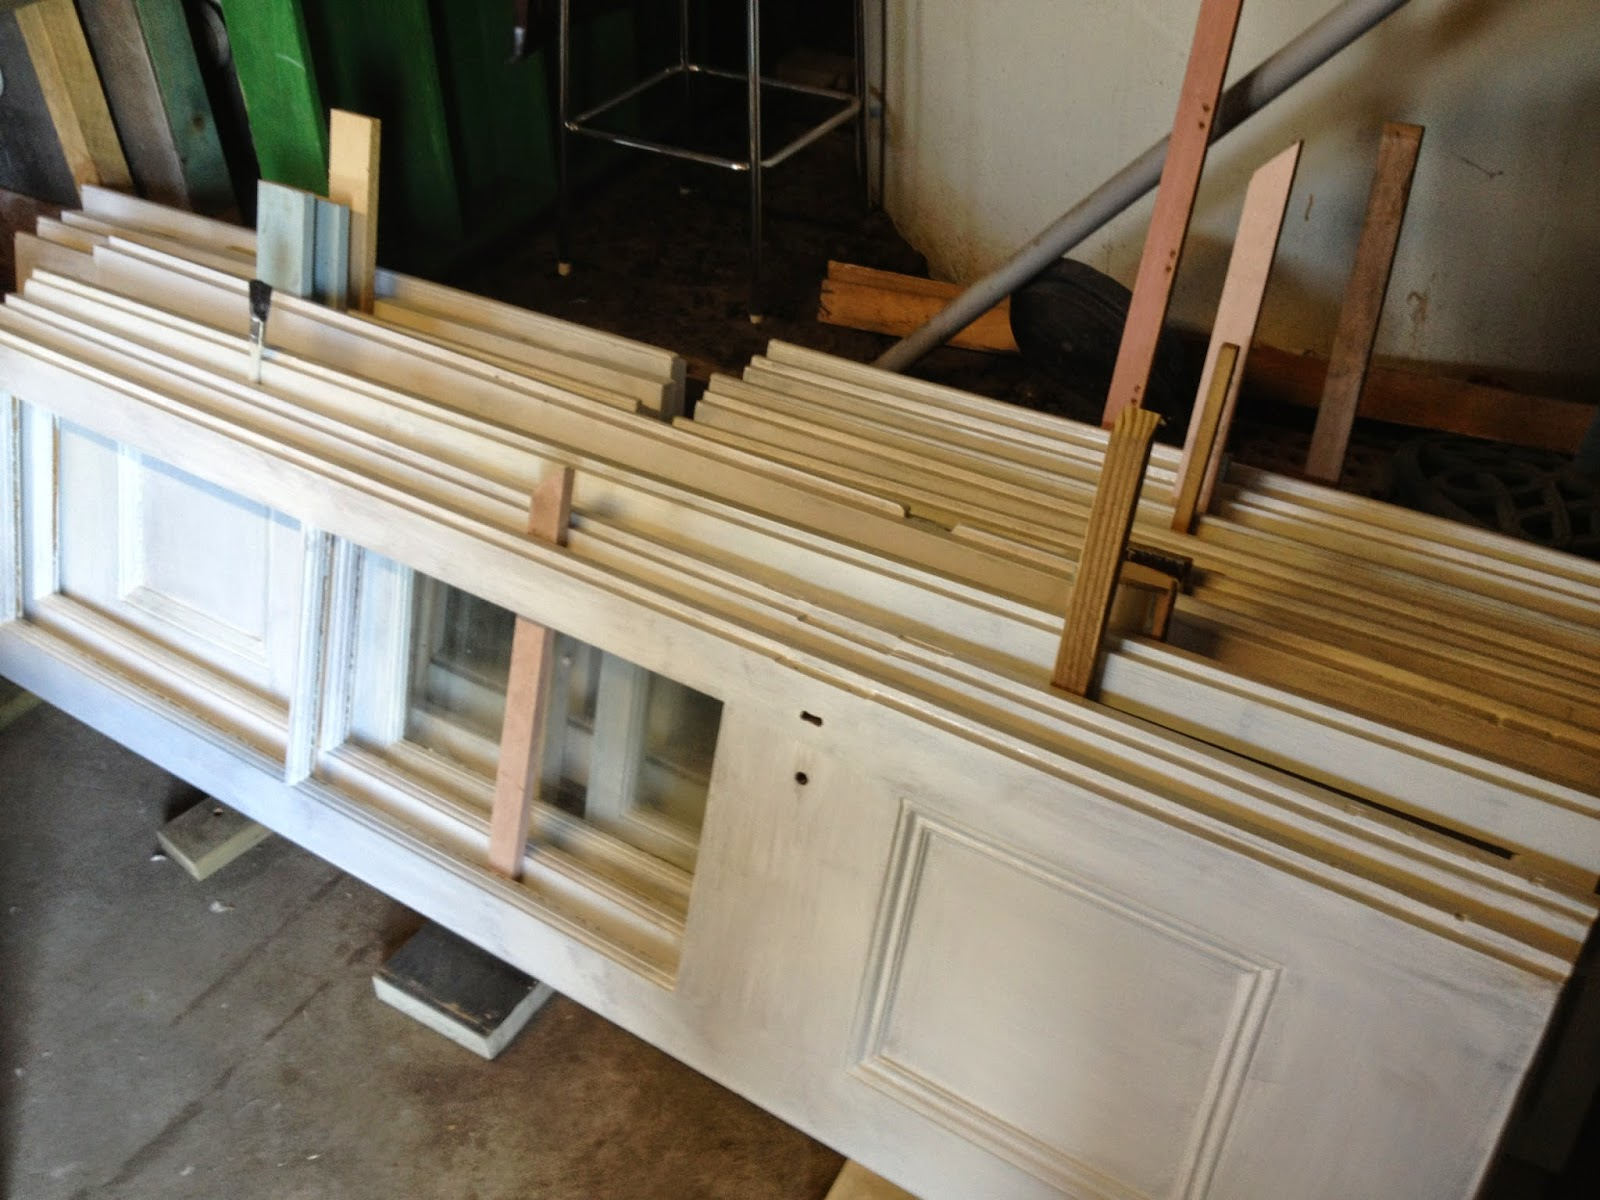 Soon to be the internal laundry door & Renovating a Queenslander: Reduce reuse recycle - renovating with ...